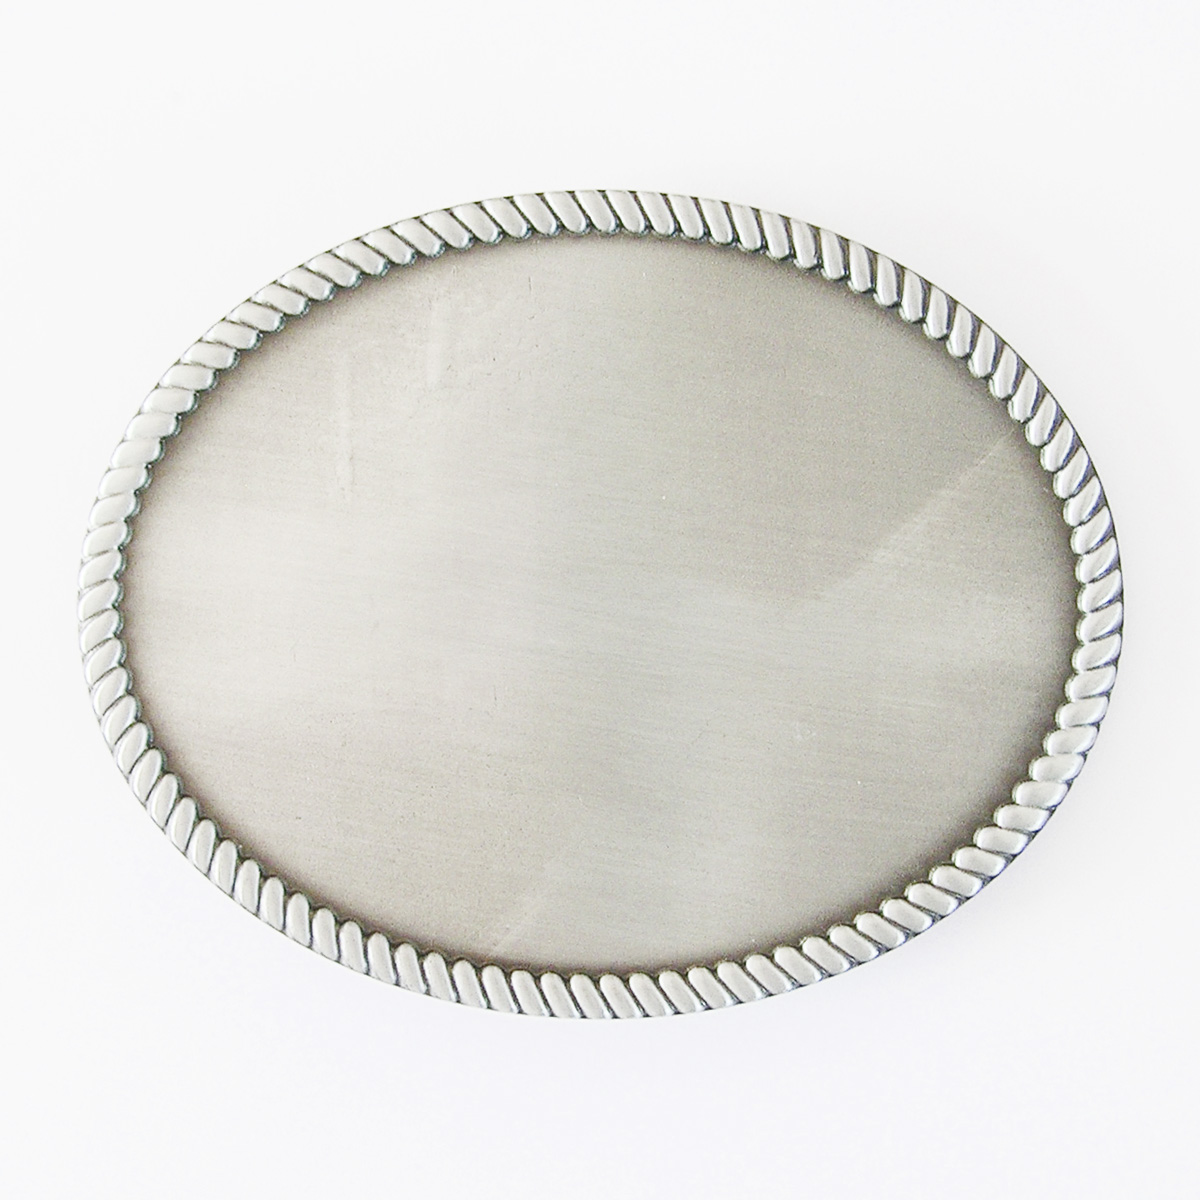 ead70b2add42 Details about New Vintage Classic Western Rope Oval Blank Belt Buckle also  Stock in US